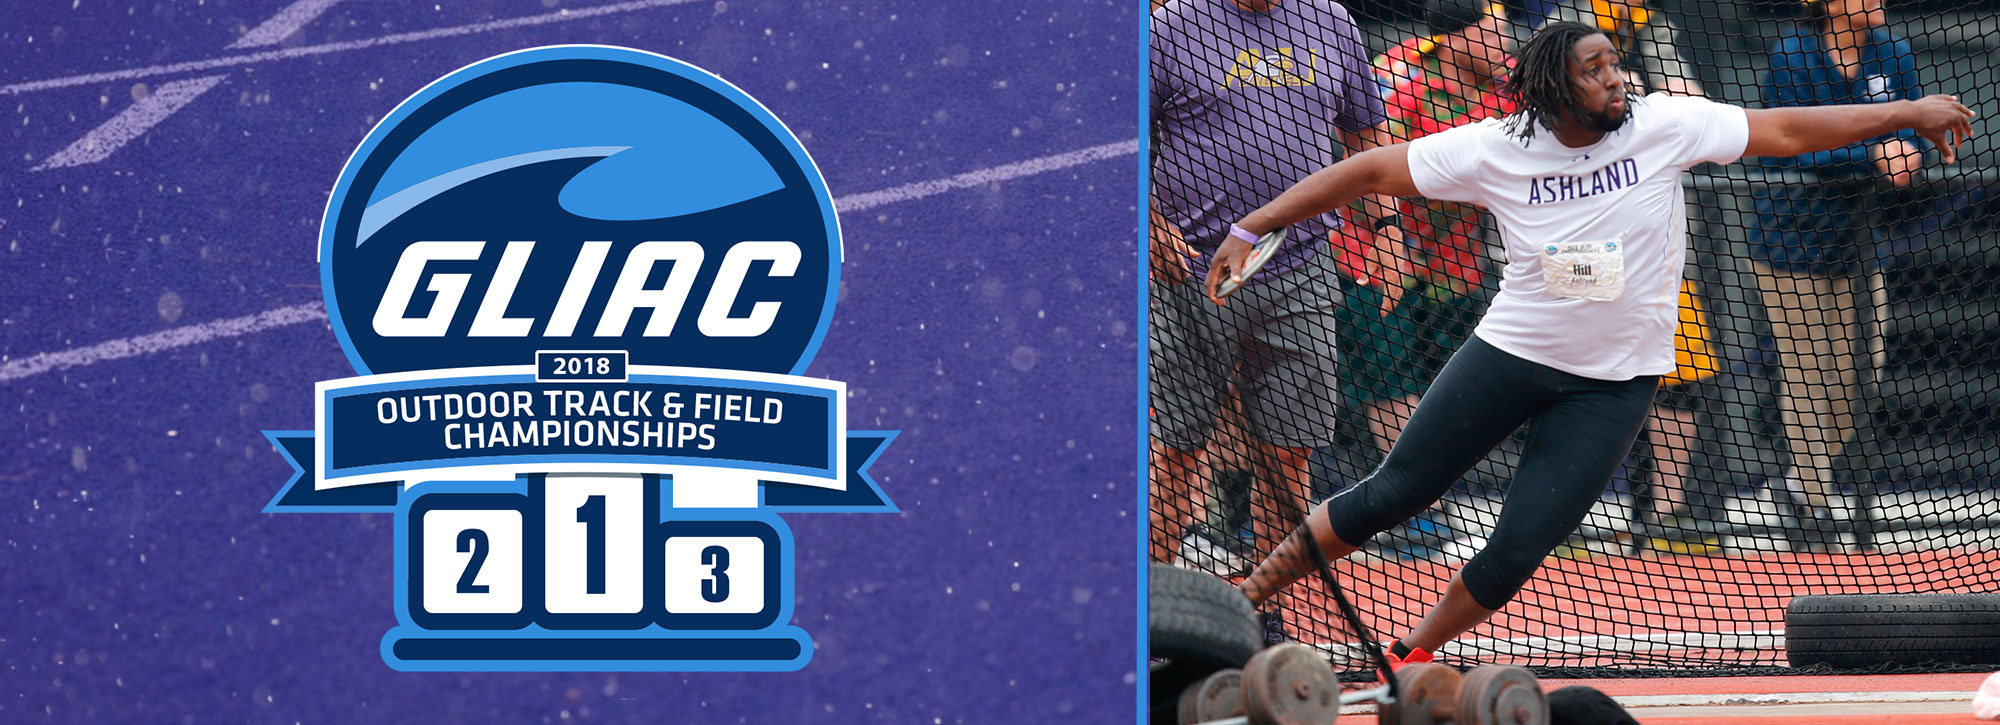 Second Day Wraps Up at GLIAC Outdoor Track & Field Championships